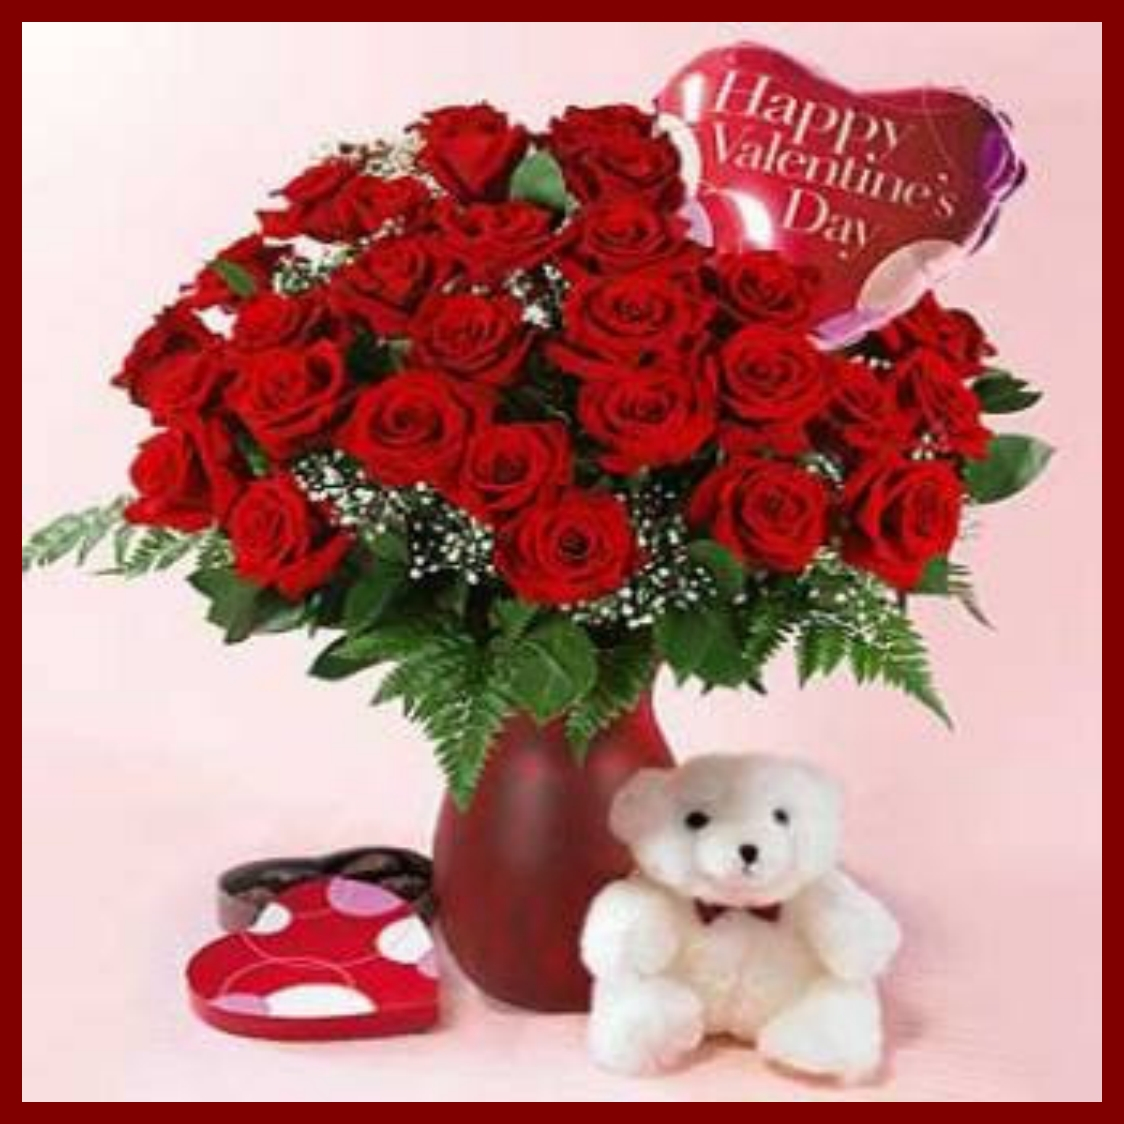 Happy Valentine Roses HD Wallpapers Collection 011